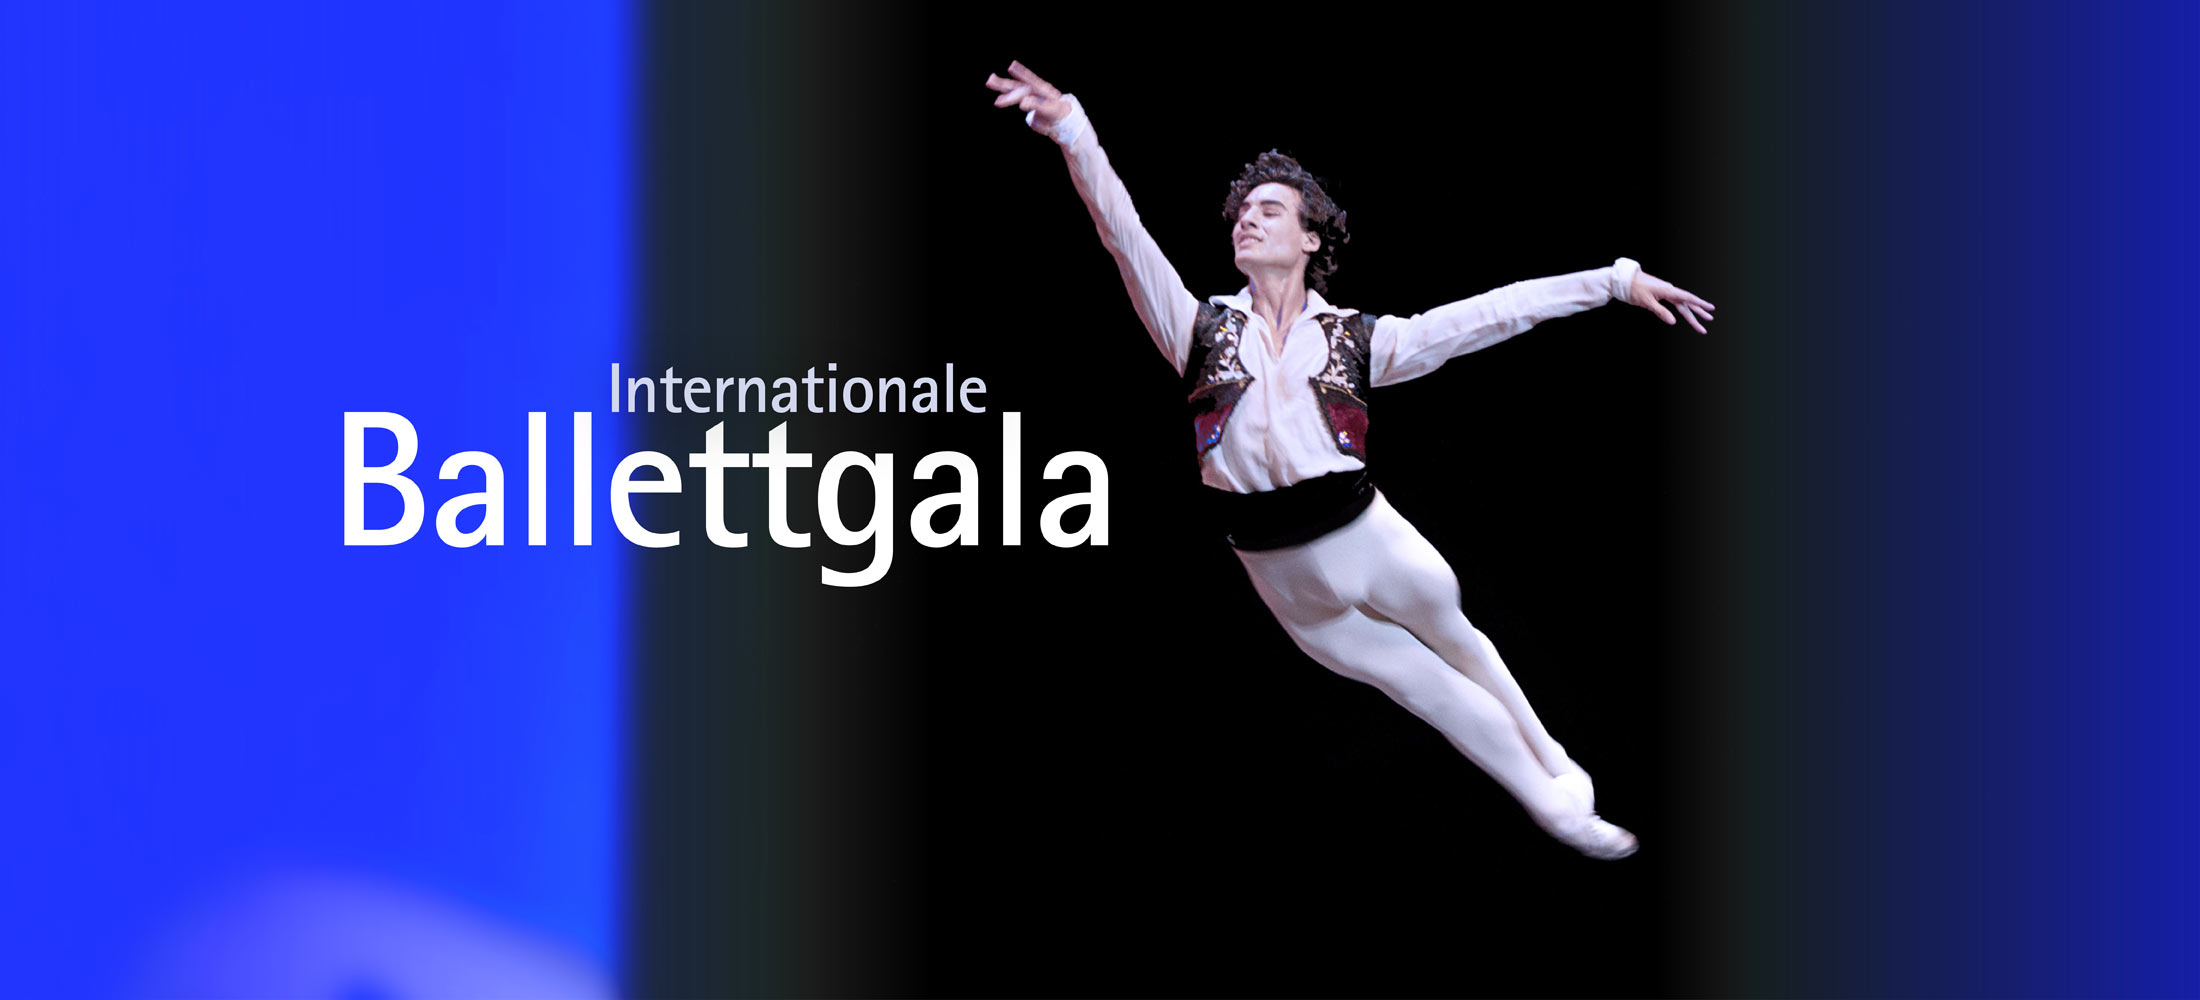 balletto ballettgala